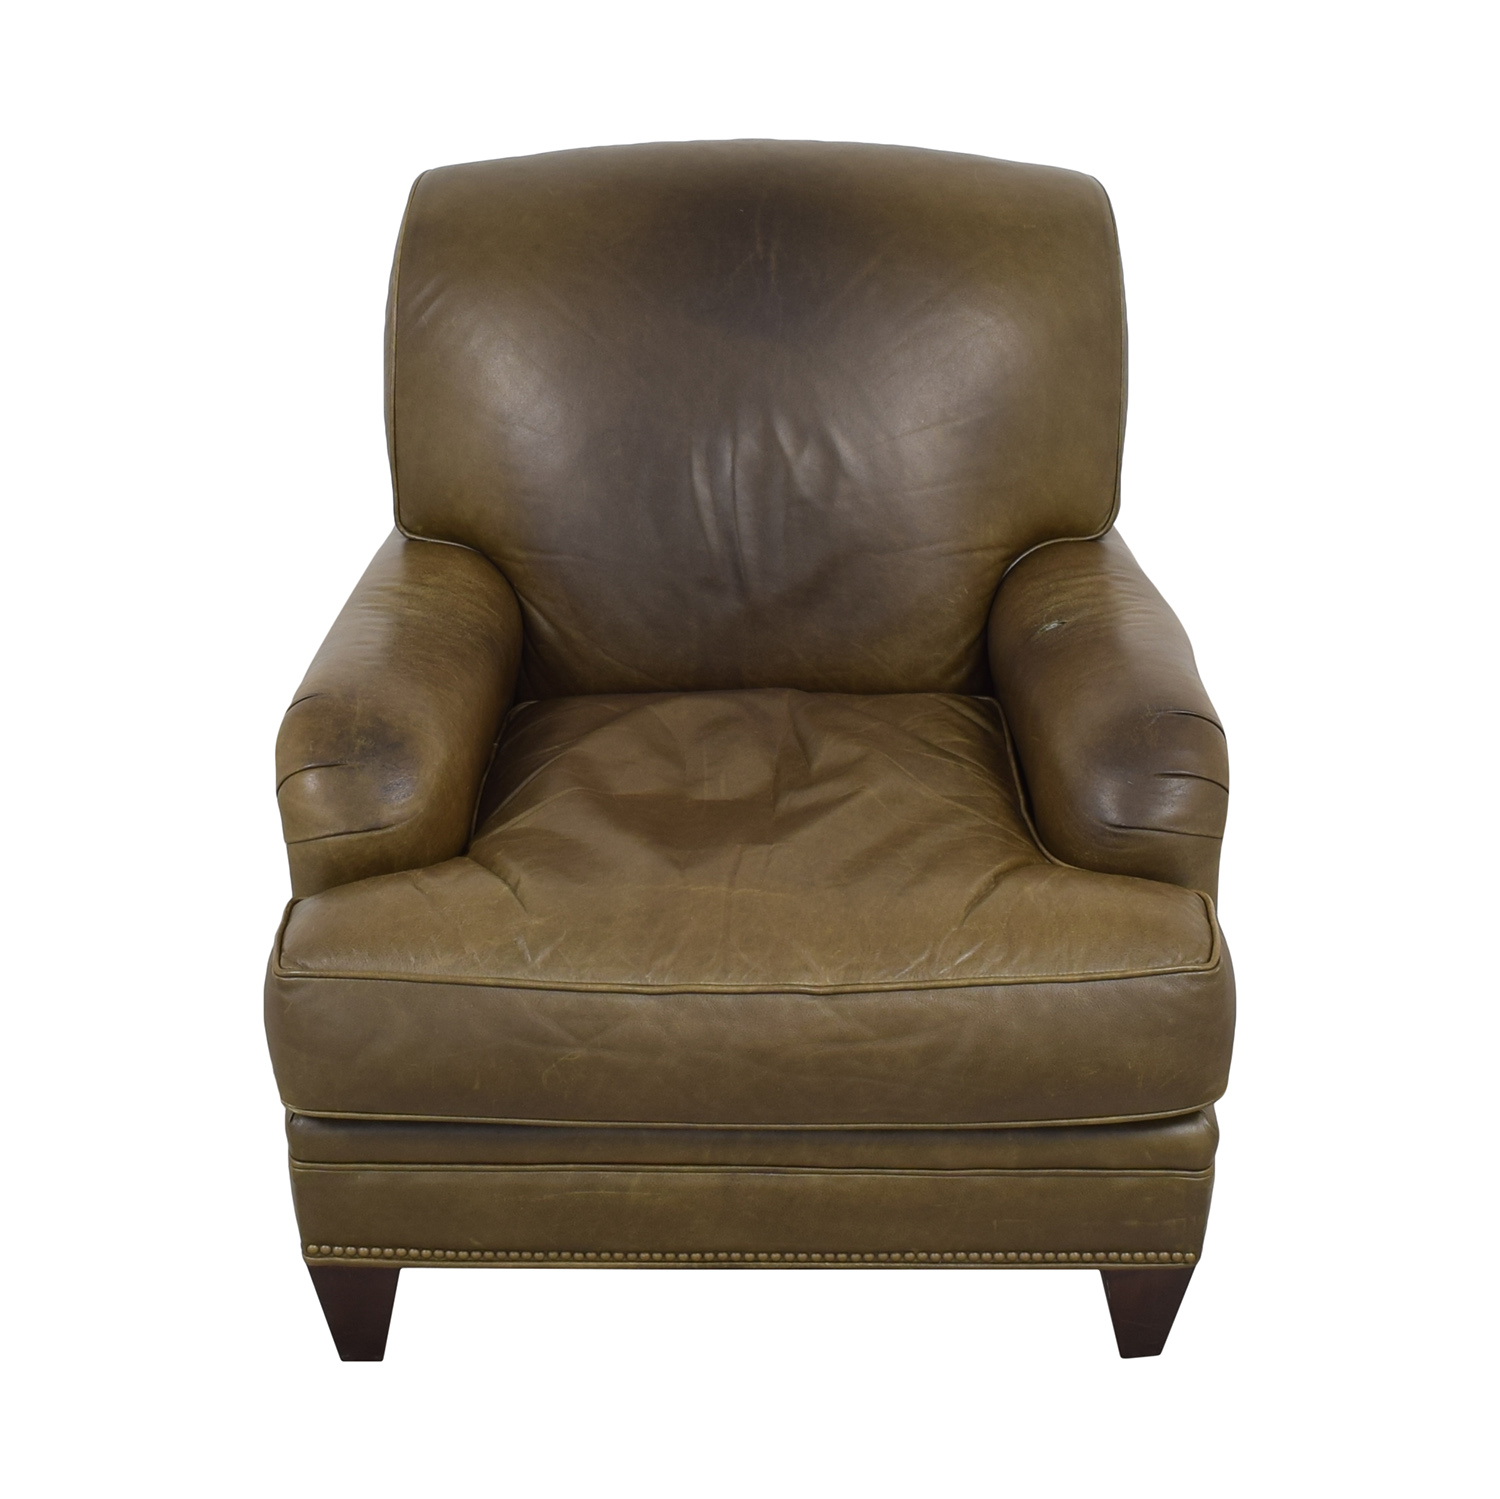 buy Macy's Modern Concepts Club Chair Macy's Accent Chairs